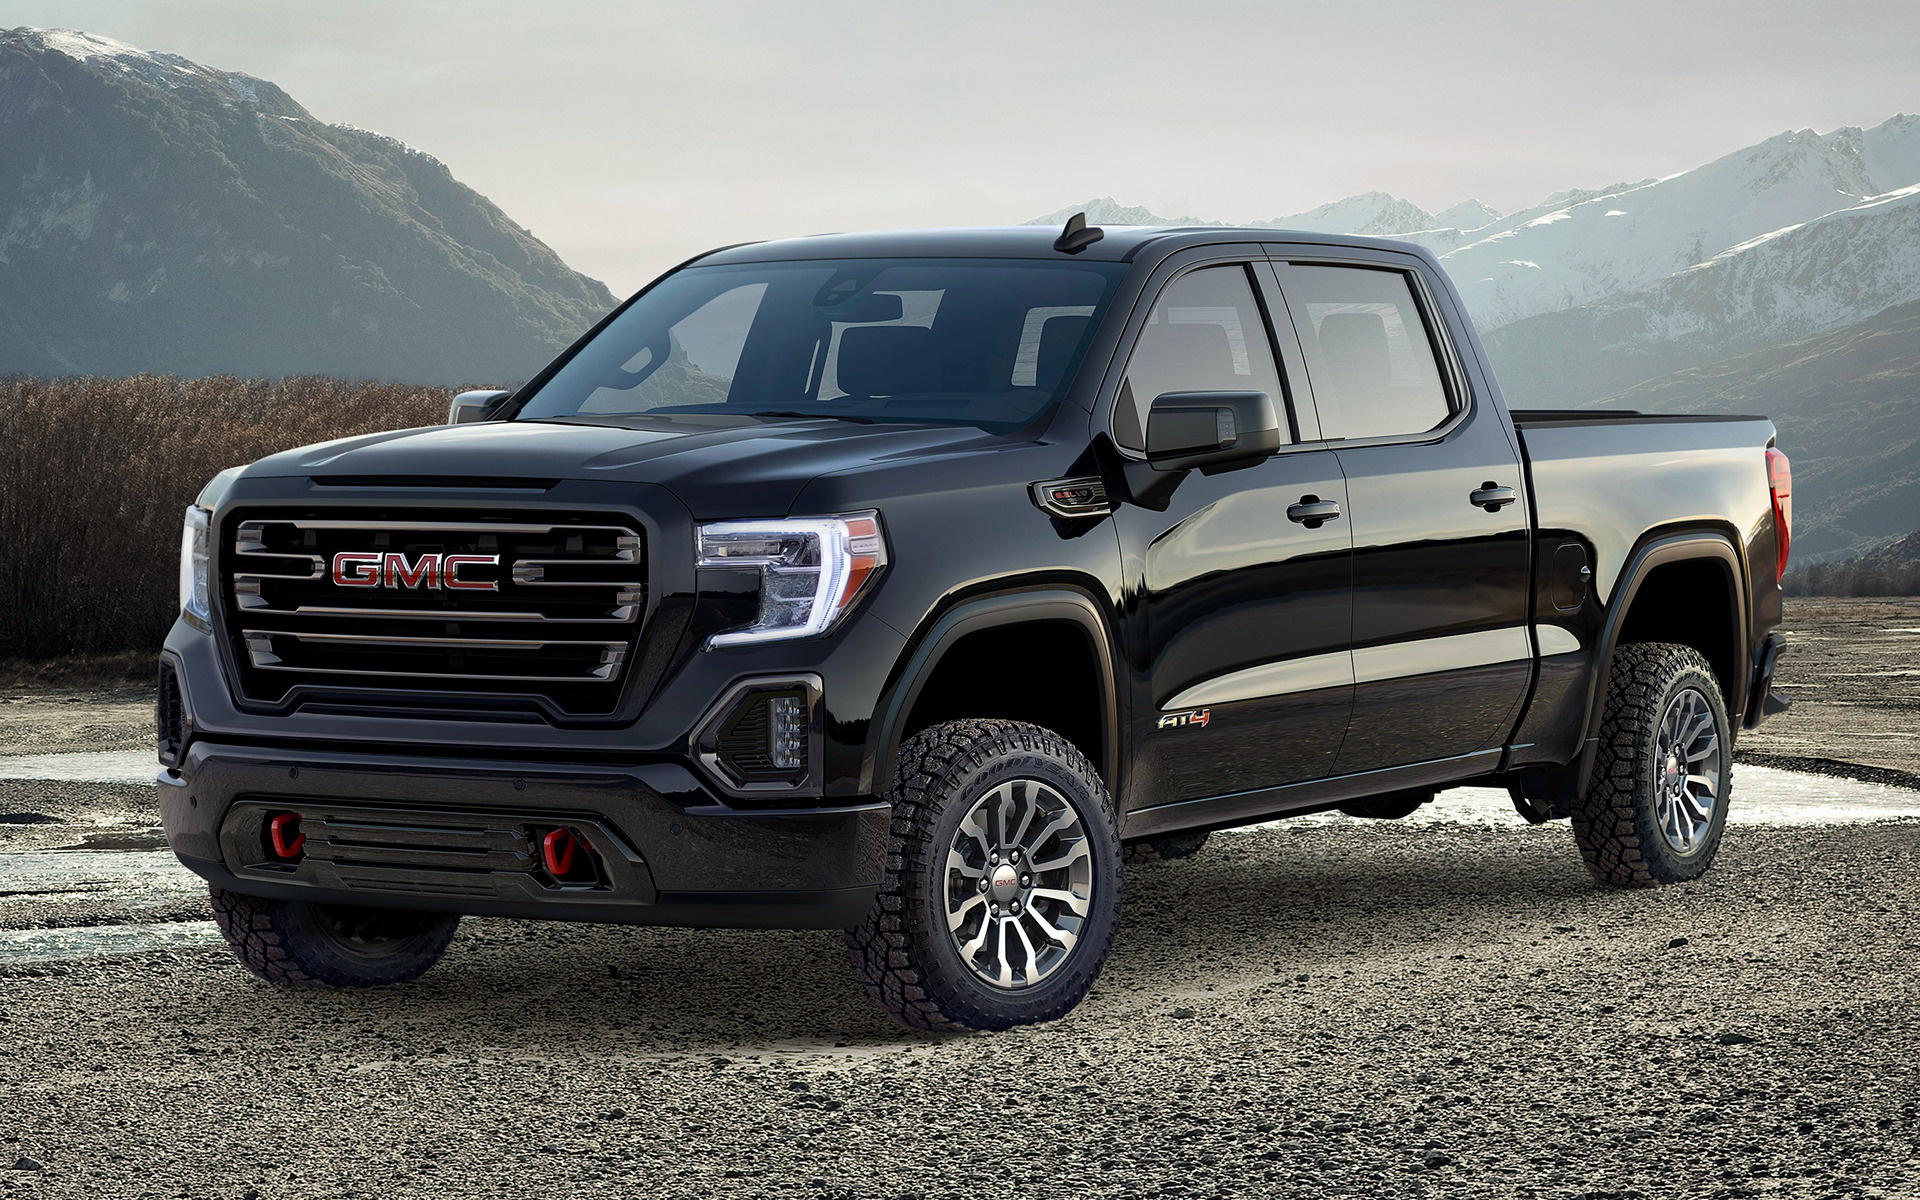 2019 Ram Hd >> GMC Sierra AT4 Crew Cab (2019) Wallpapers and HD Images - Car Pixel